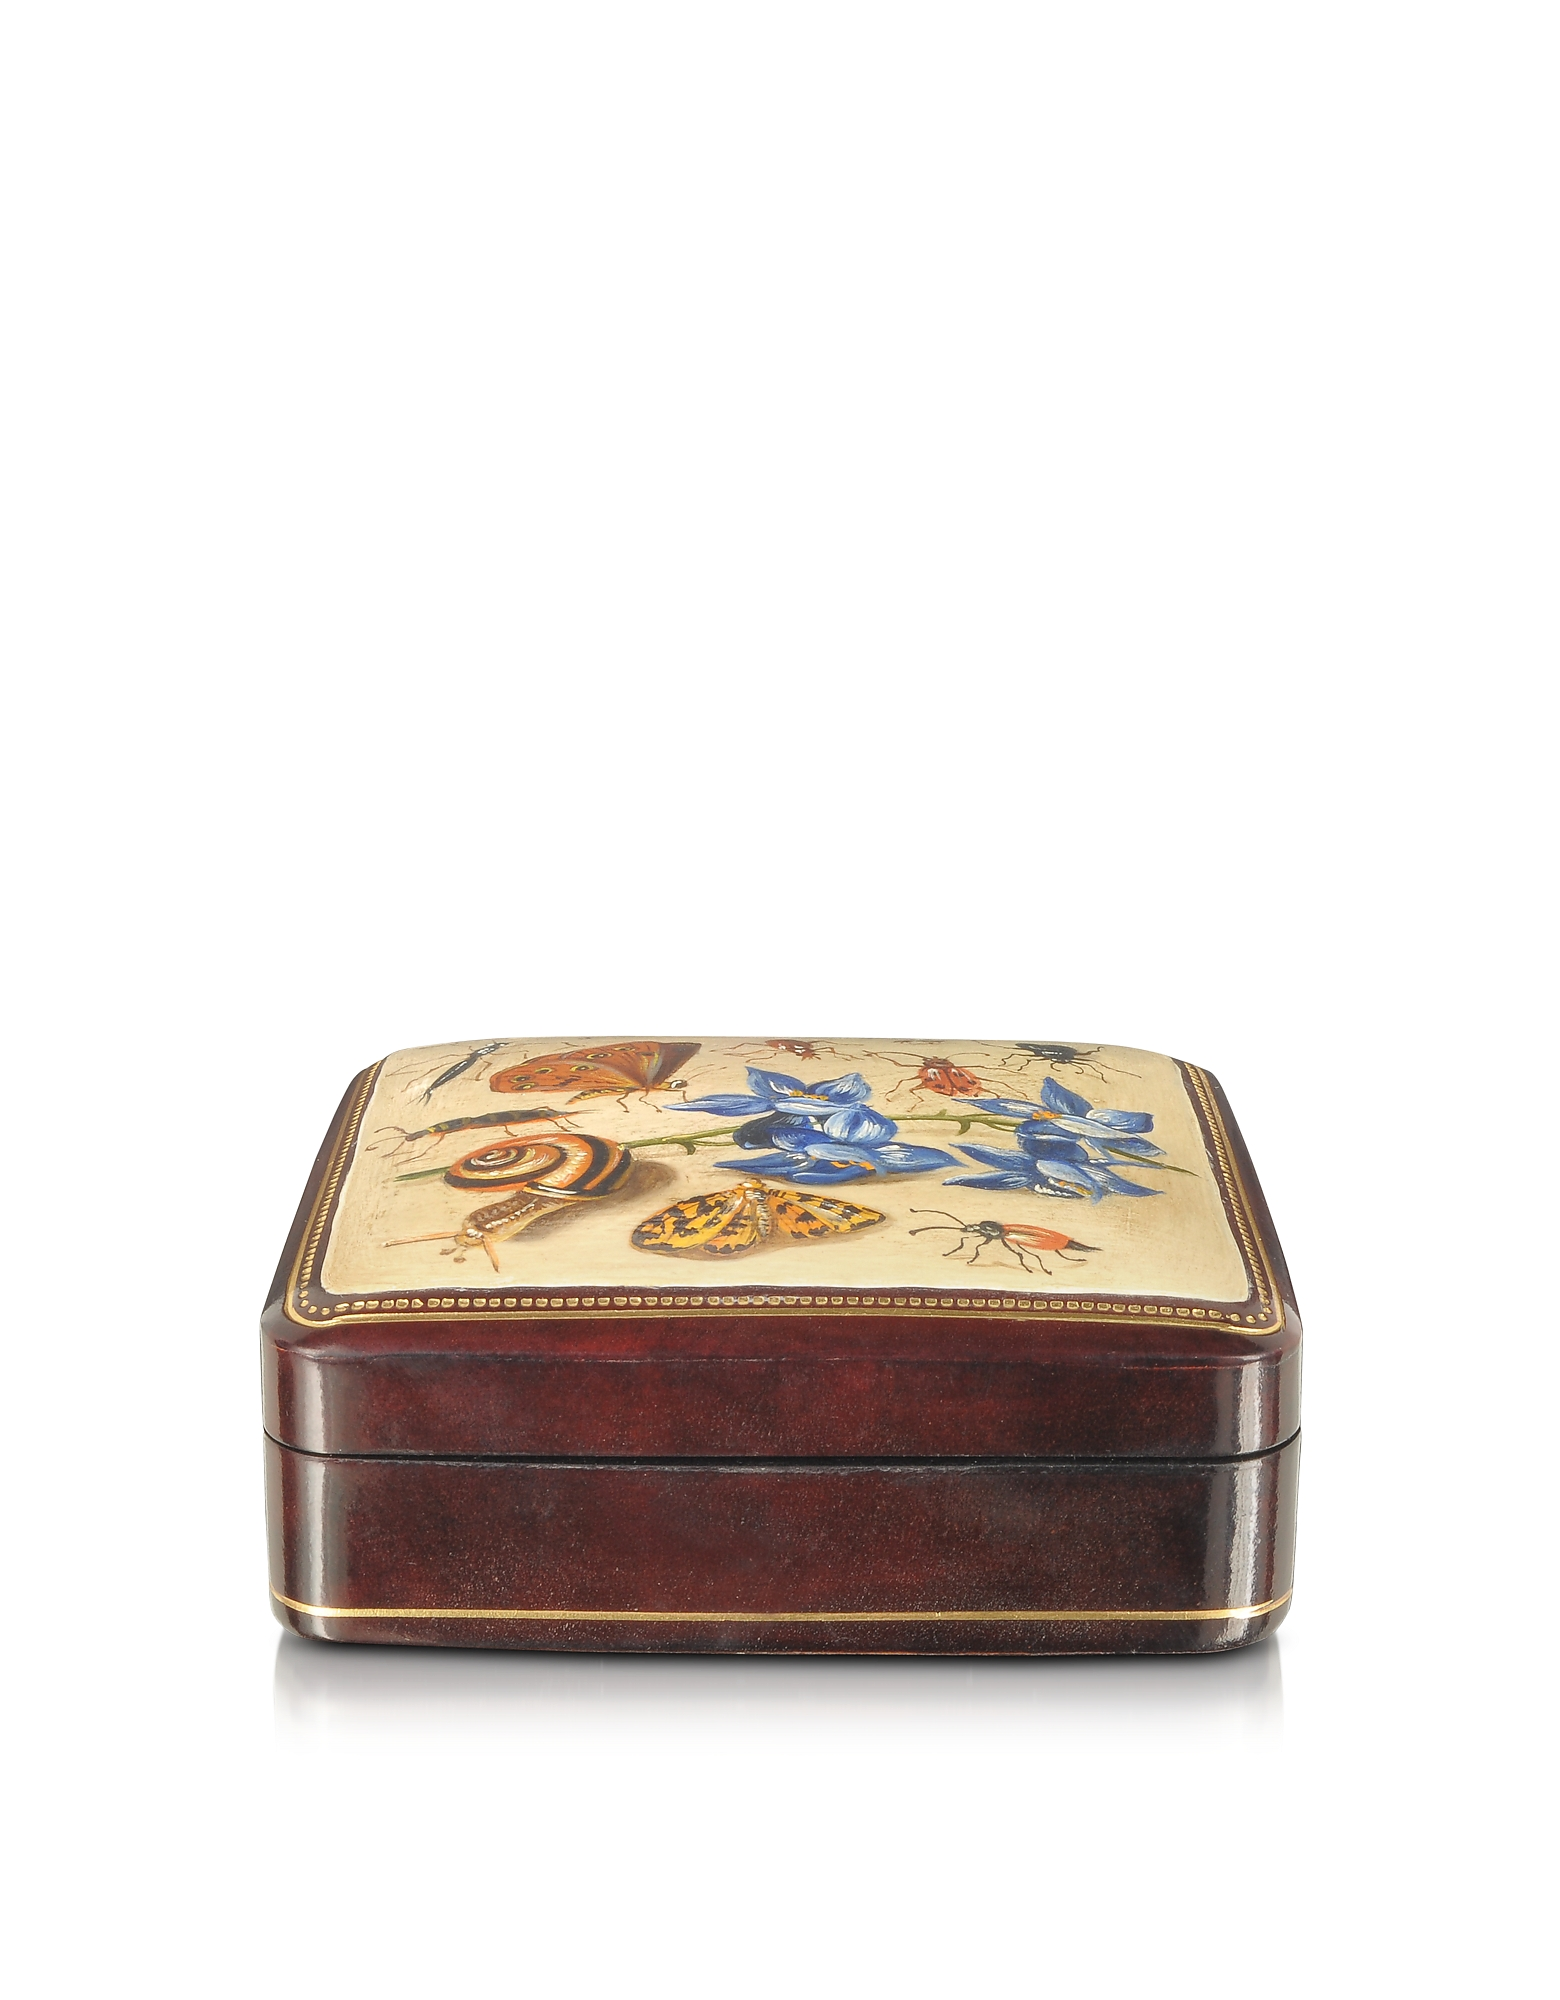 Bianchi Arte Jewelry Boxes, Oil on Leather Mini Jewelry Box w/Light Blue Flower